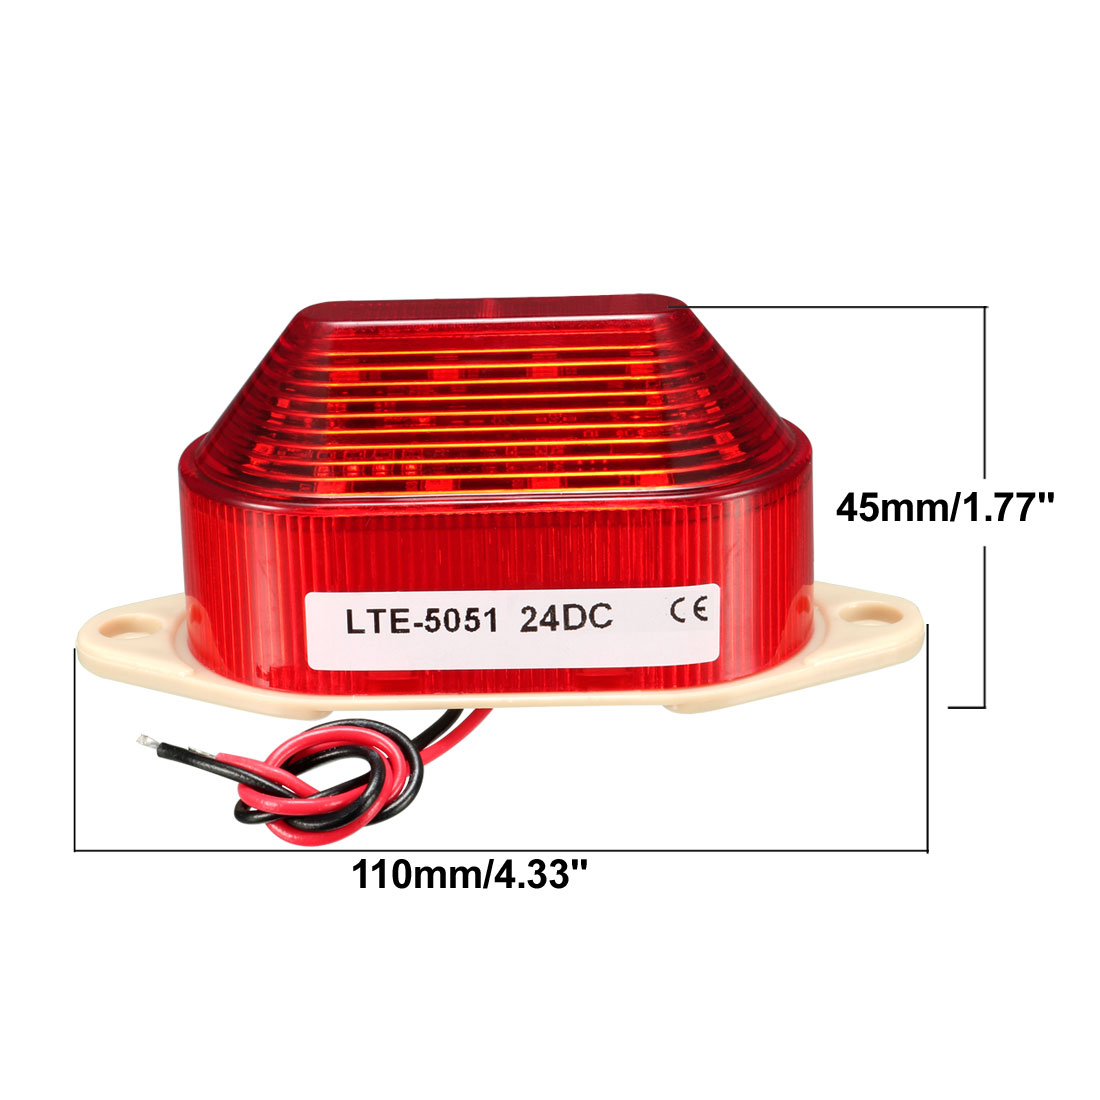 Warning Light Bulb Flashing Industrial Signal Tower Lamp DC 24V Red LTE-5051 - image 1 of 4